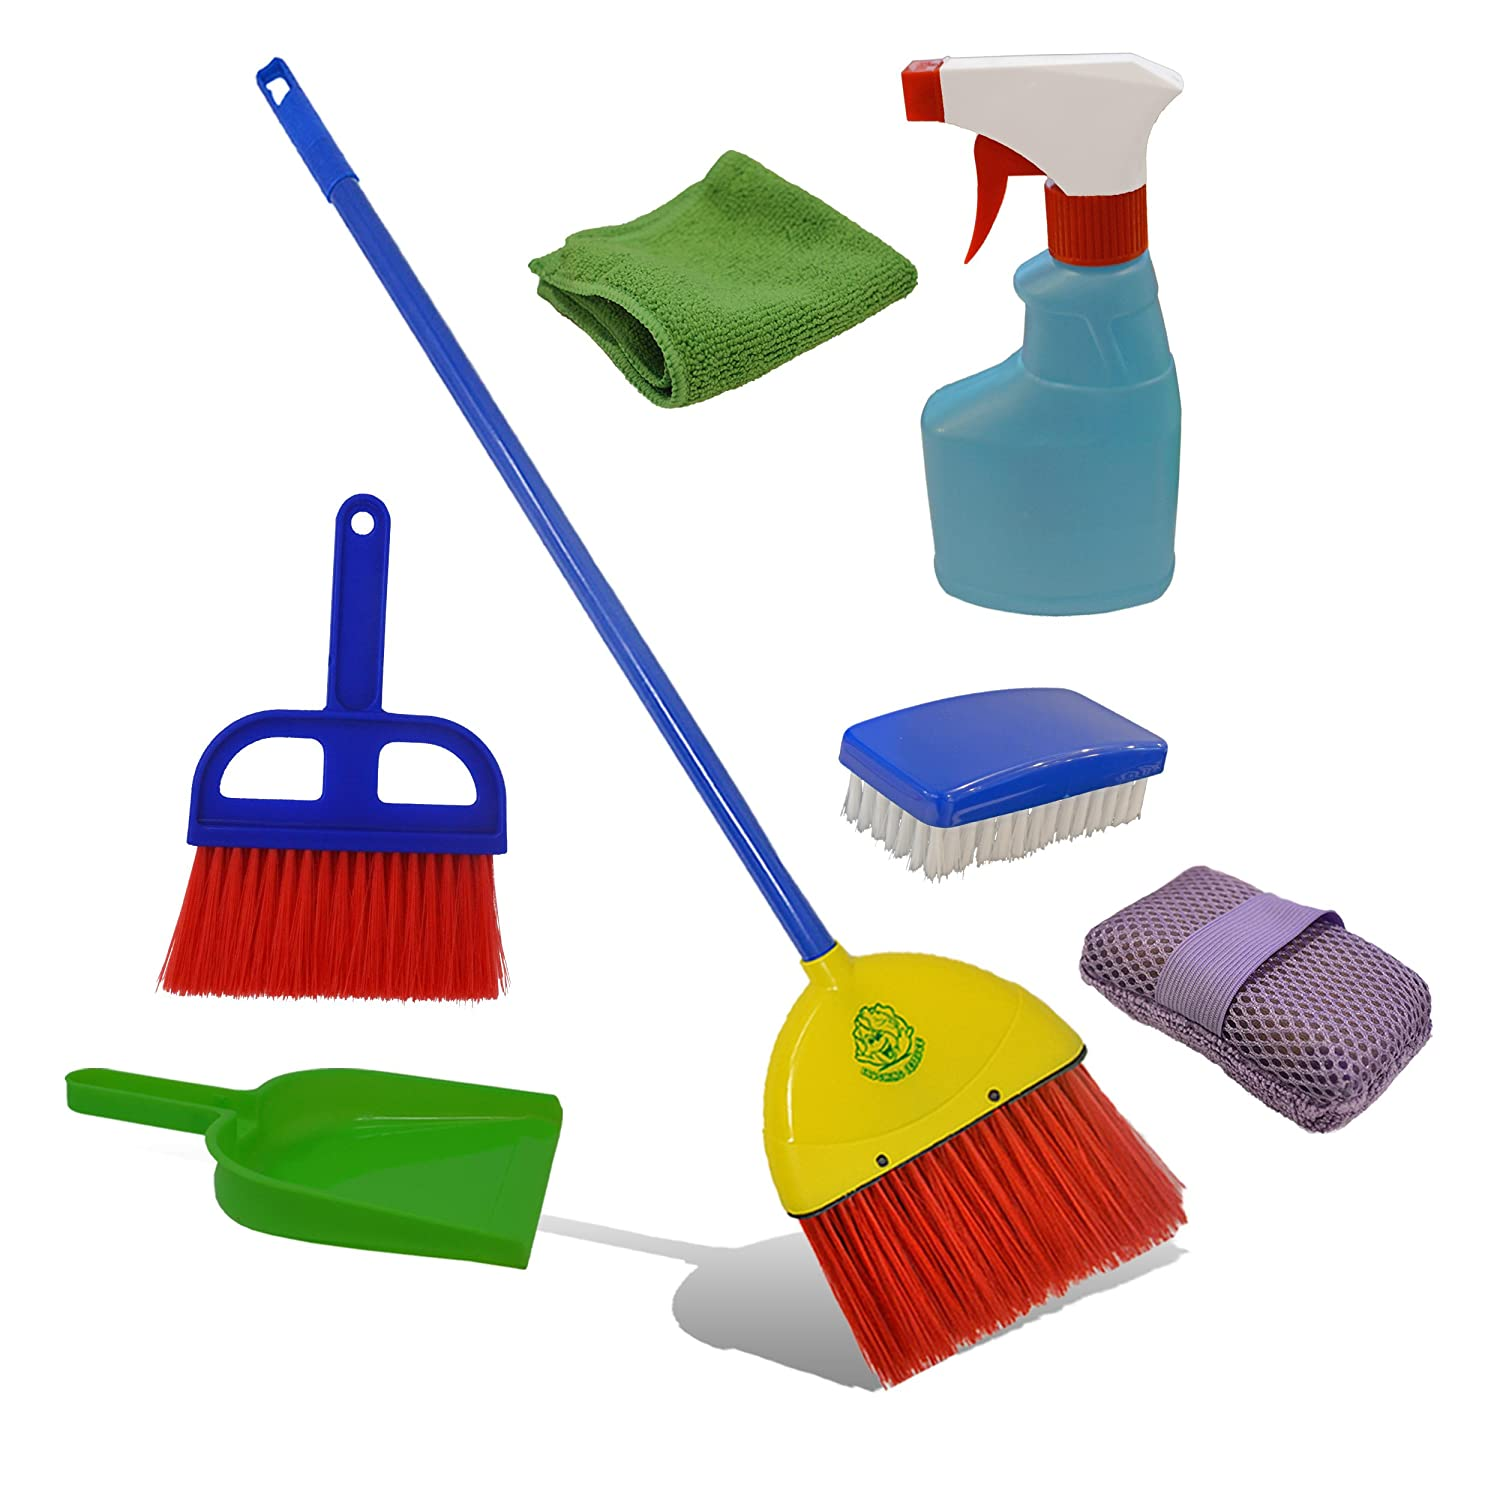 Childrens Cleaning Set- Broom, Dustpan, Mini Sweeper, Spray Bottle, Sponge, Scrub Brush, Microfiber Cloth. Toy Cleaning Supplies that Work Montessori Housekeeping Tools that Fit Into Kid's Hands   B076J1LFFT